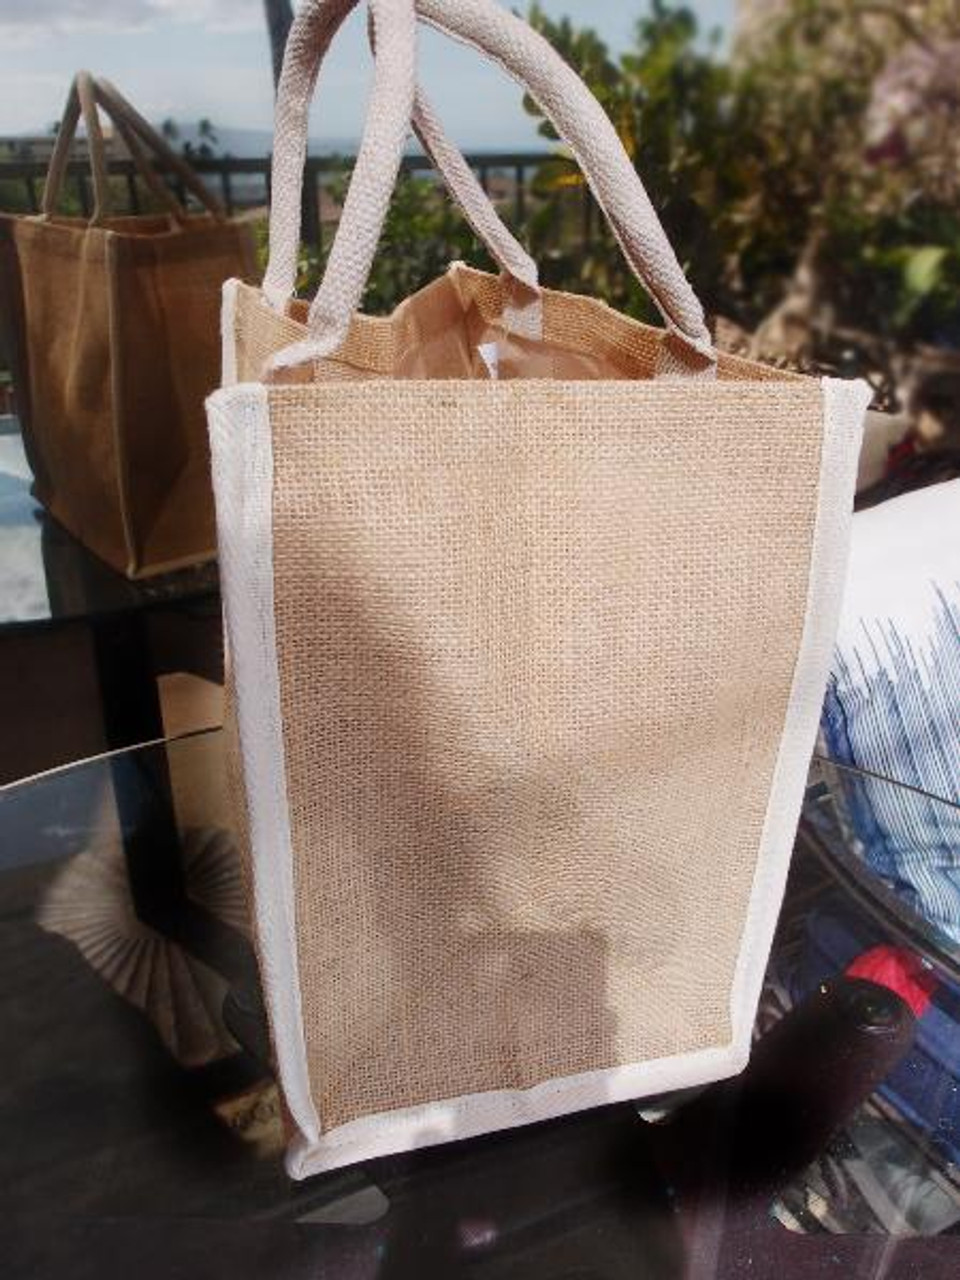 """Wholesale Gift Packaging Supplier, Jute Tote Bag with White Cotton Trim 12"""" W x 12"""" H x 7 3/4"""" Gusset , B875-71"""